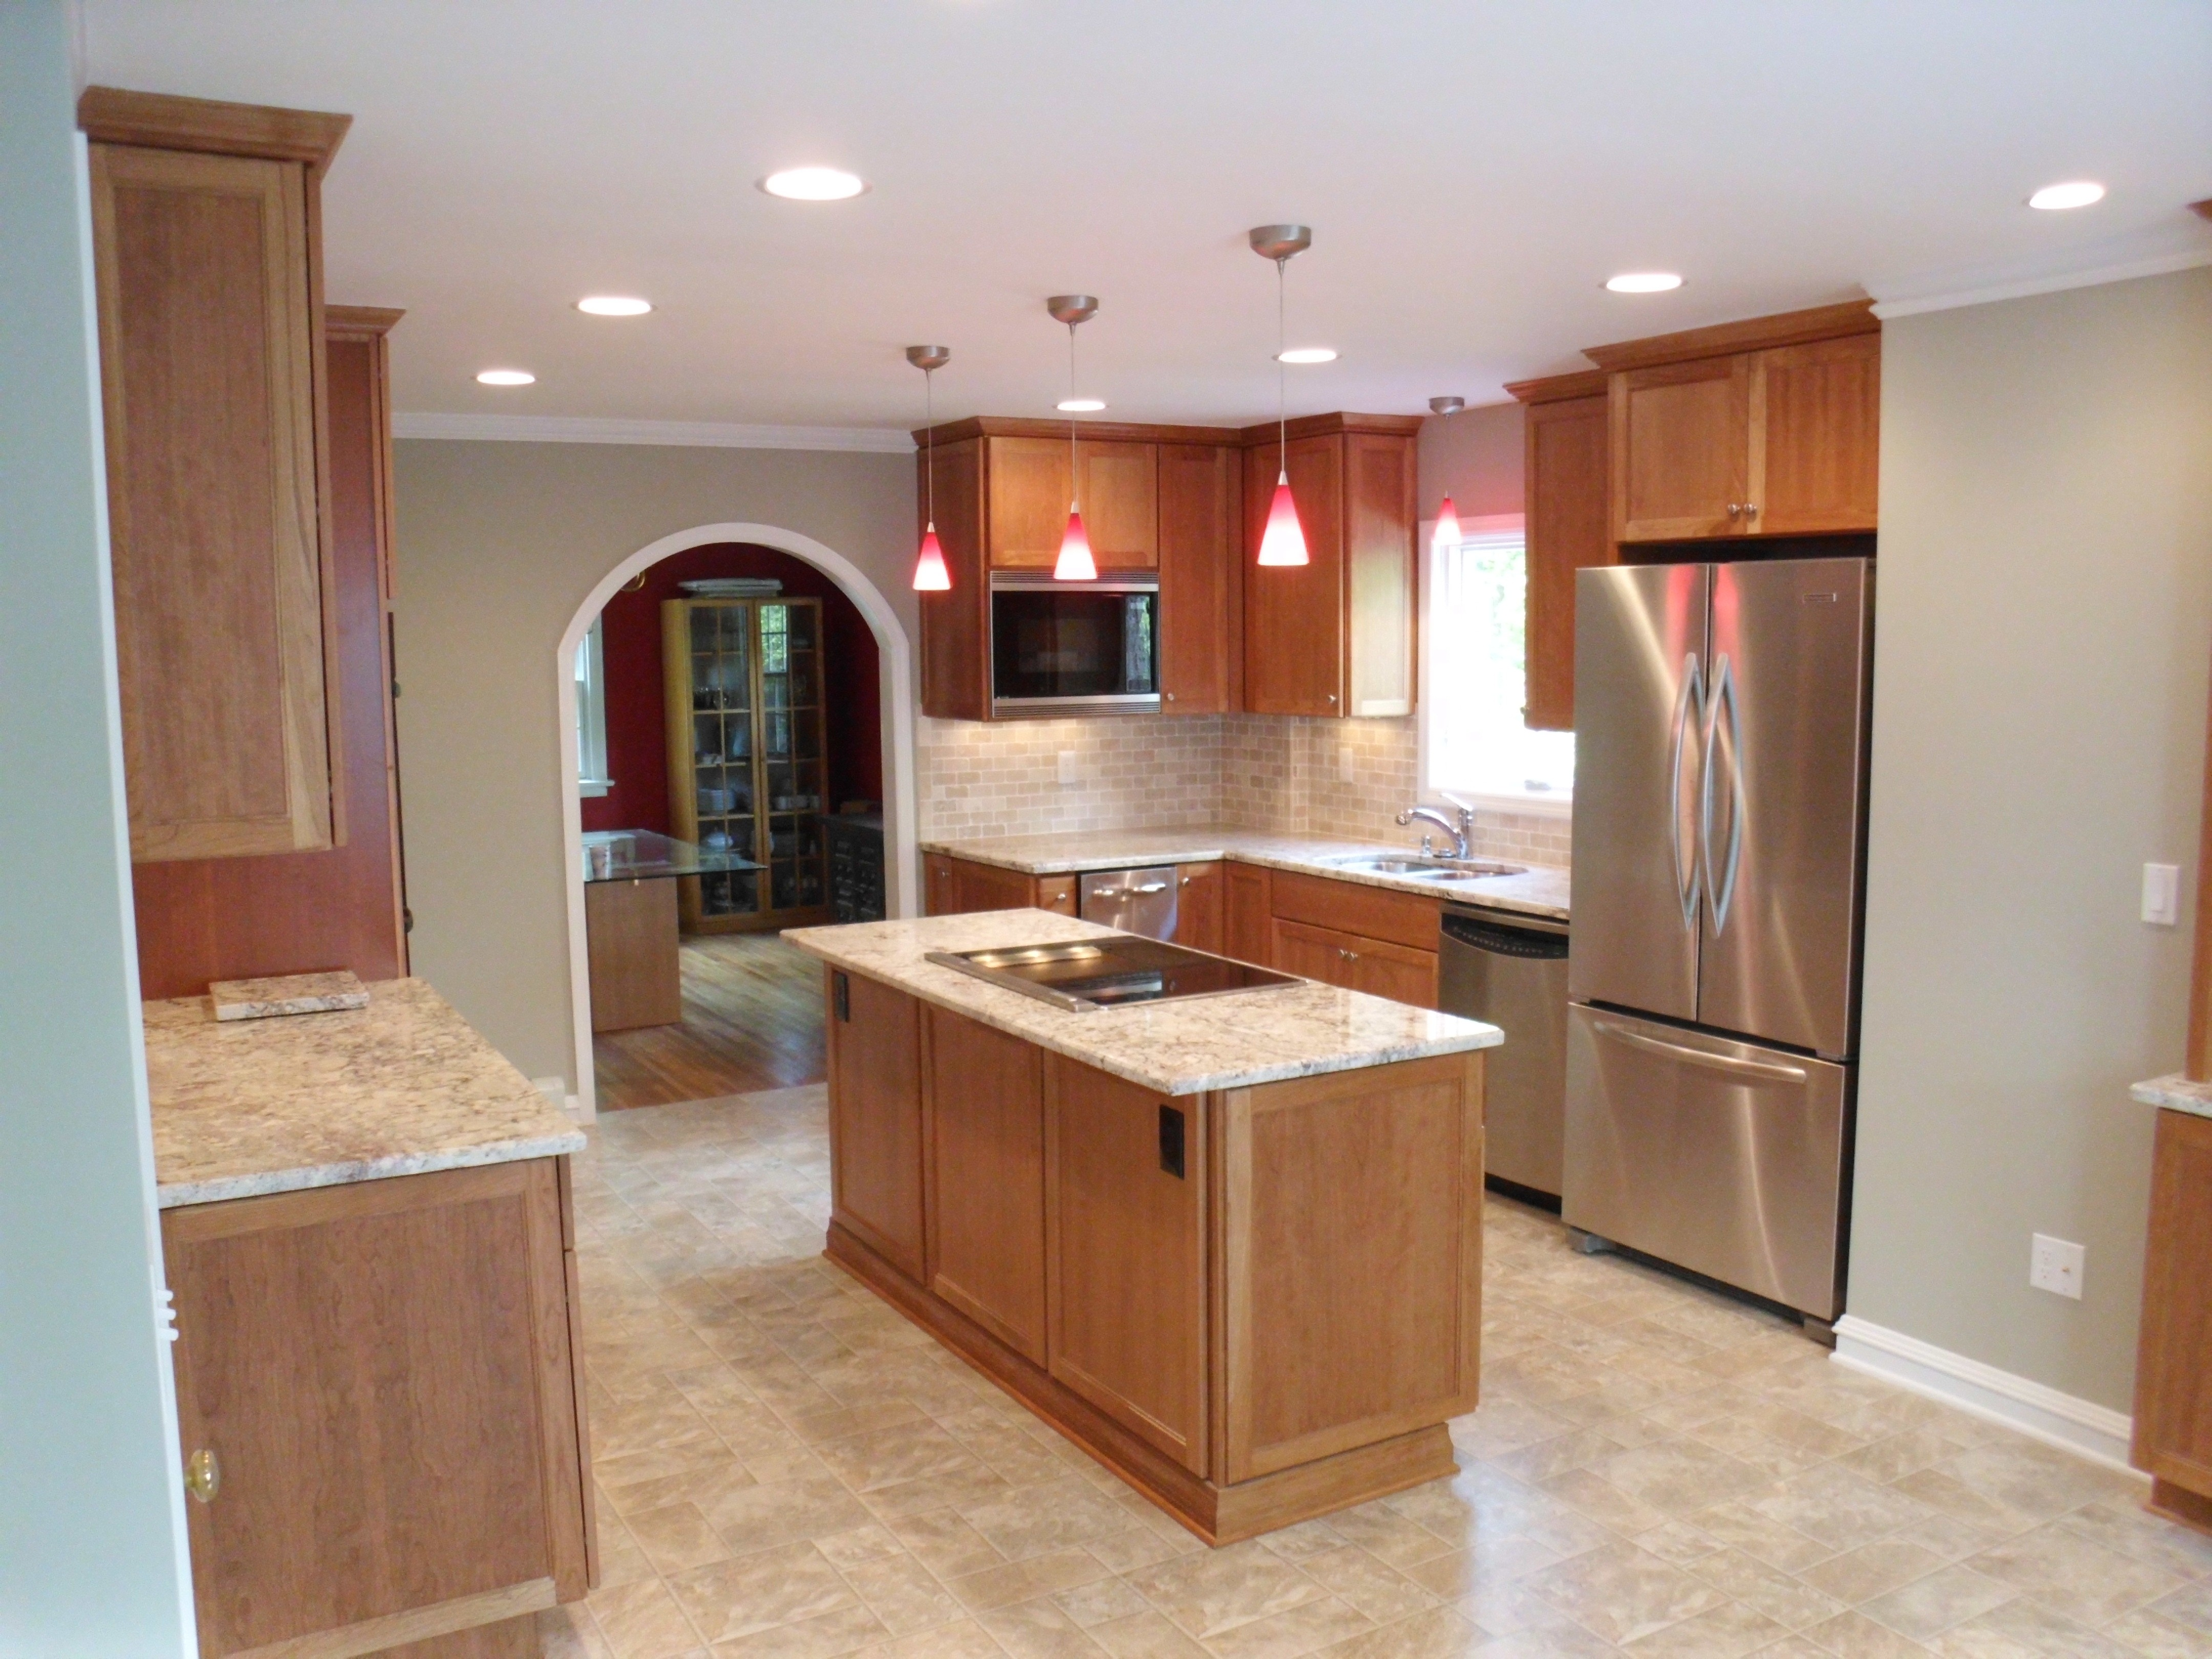 Epic-Building-Company-Reynoldsburg-Ohio-Kitchen-Remodeling